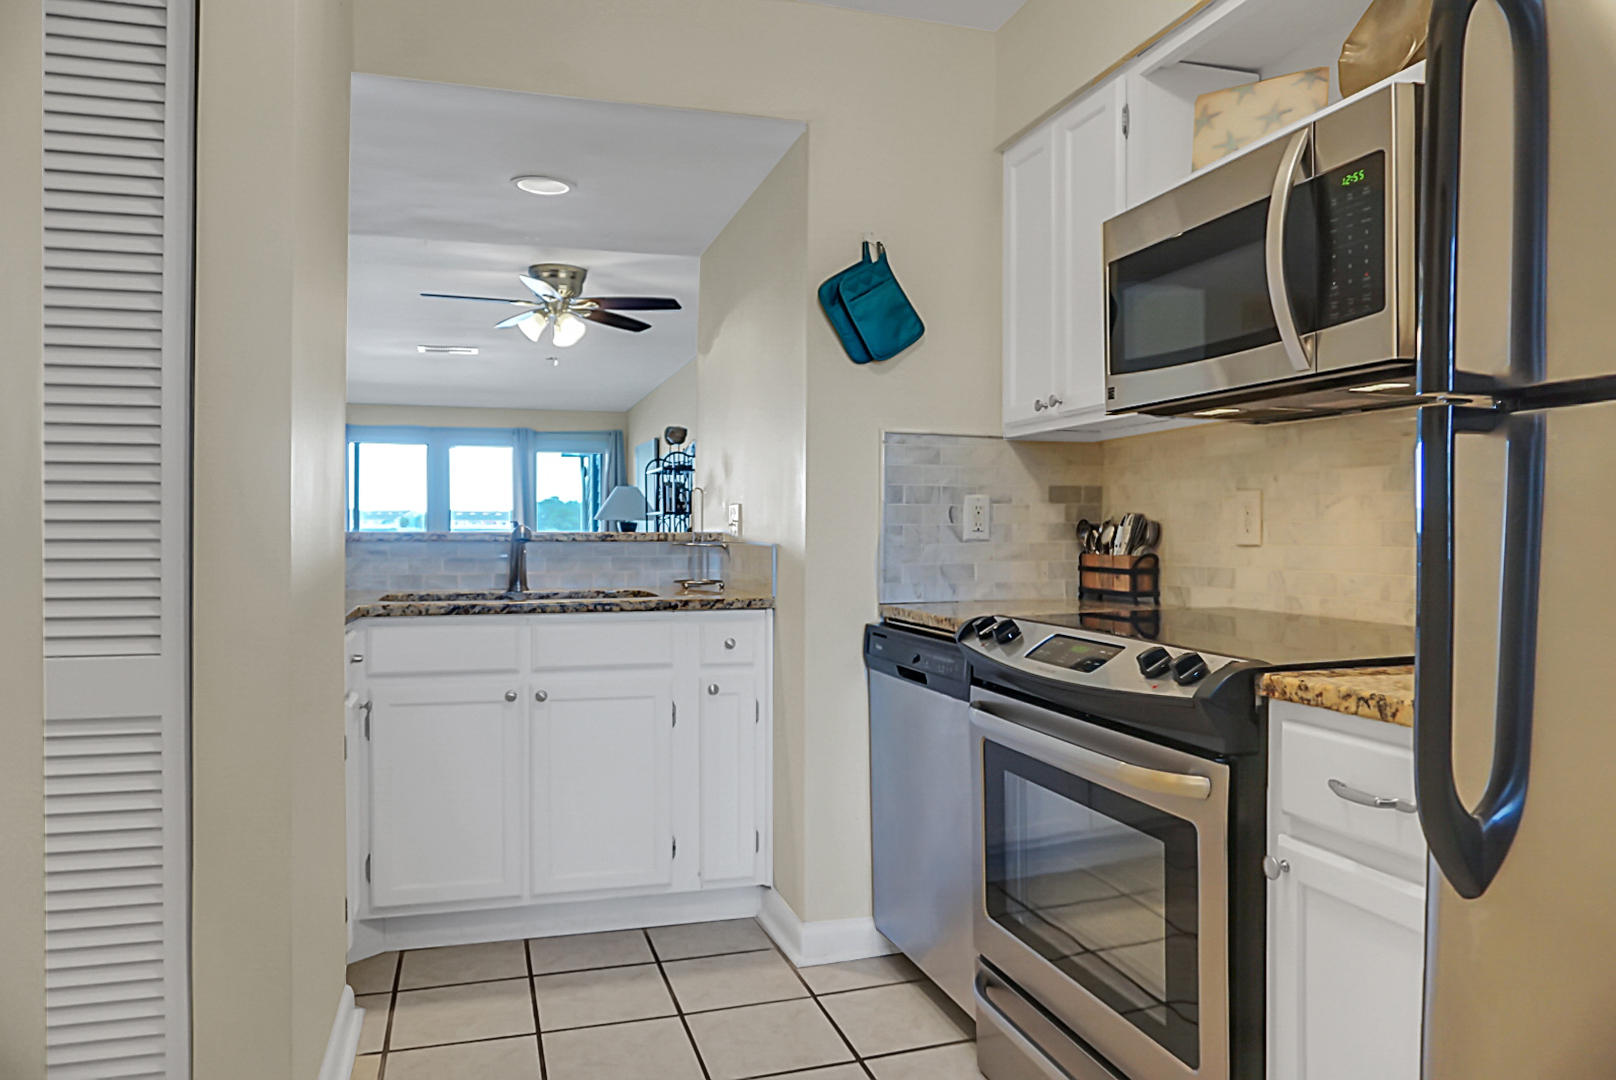 Mariners Cay Homes For Sale - 45 Mariners Cay, Folly Beach, SC - 44